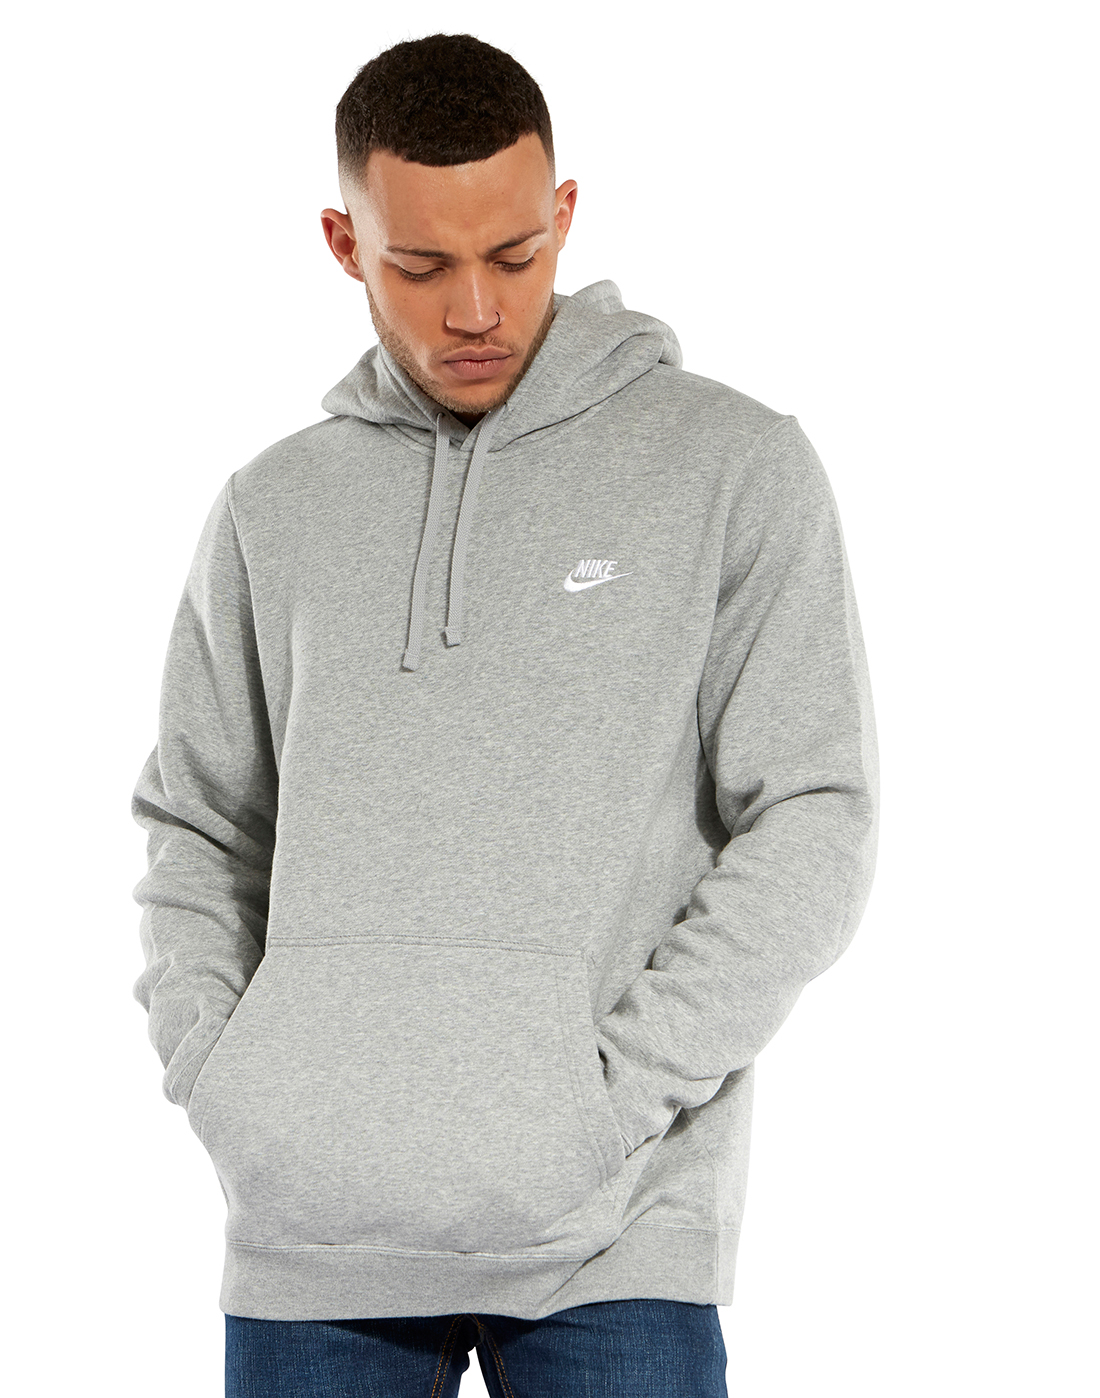 ab755a08f Men's Grey Nike Pullover Hoodie | Life Style Sports